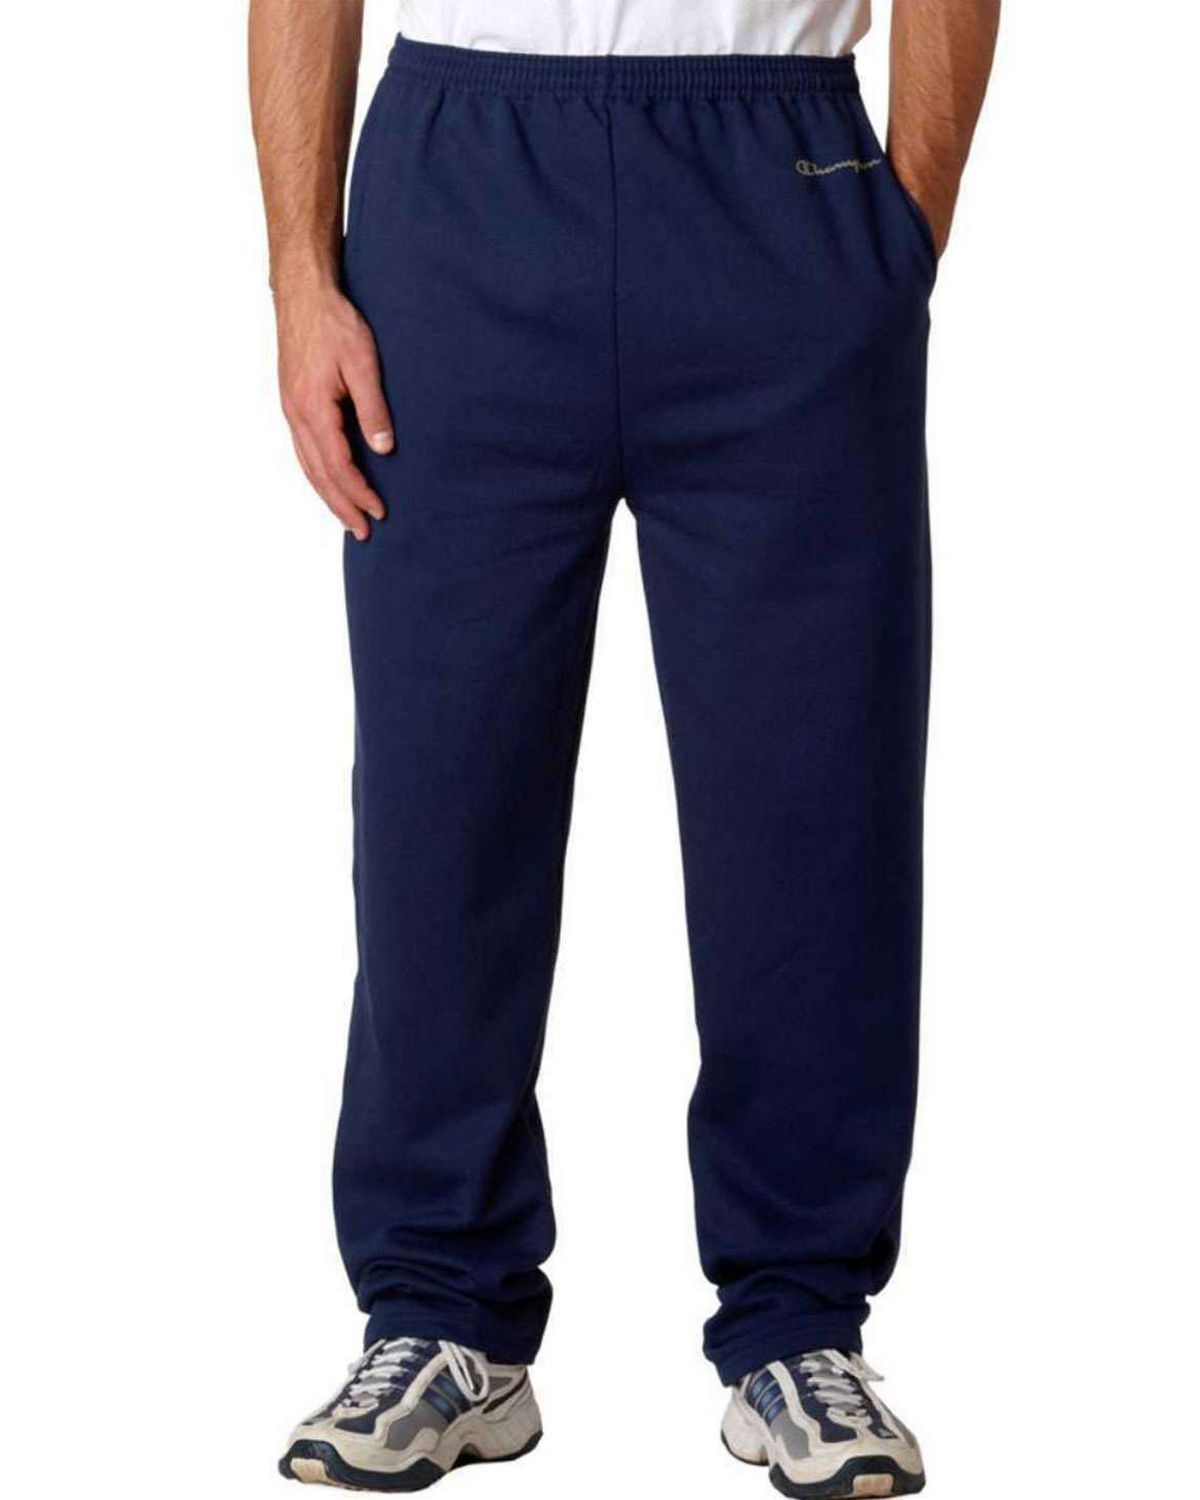 Champion S245 CH Open Bottom Pant - Light Steel - XL S245